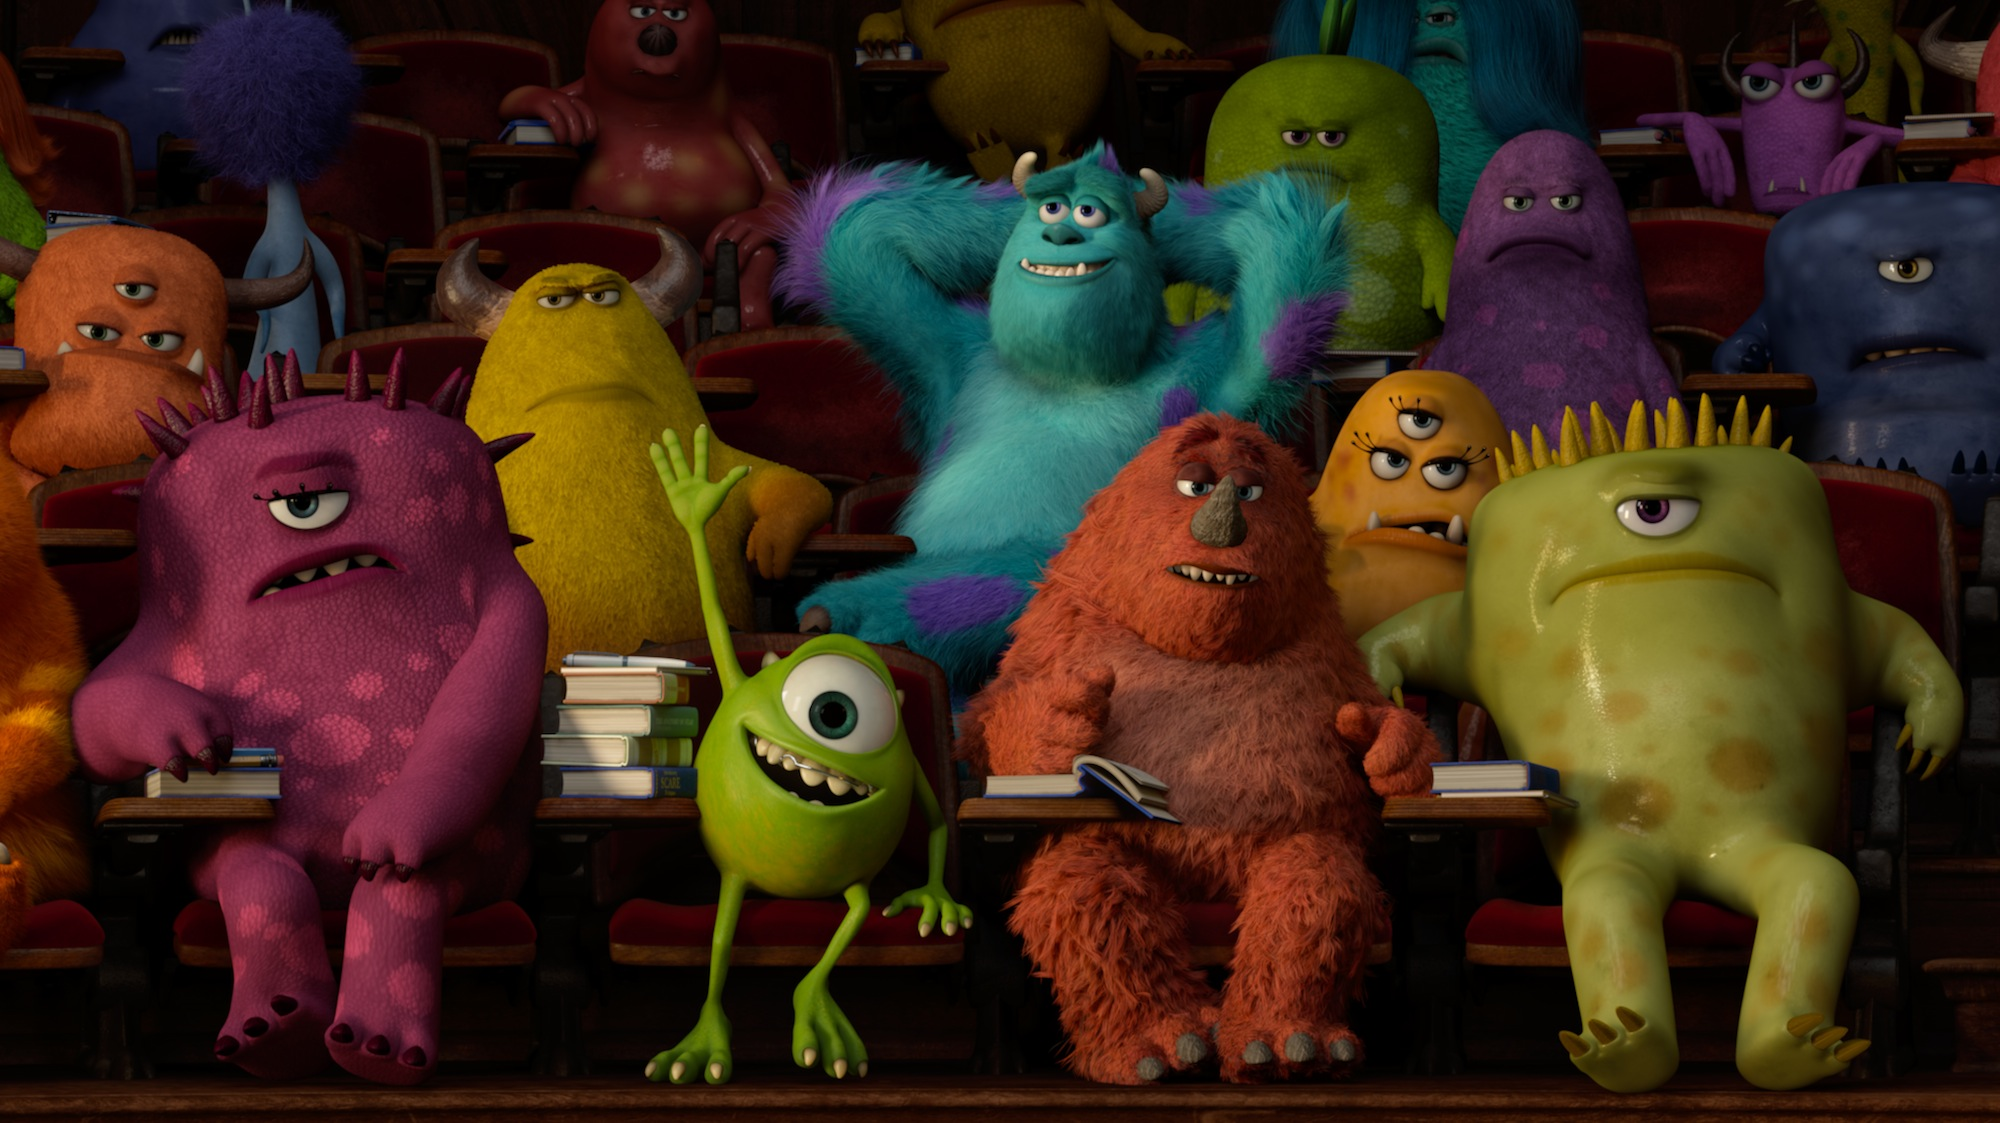 'Monsters University' Nominated For Animated Film BAFTA